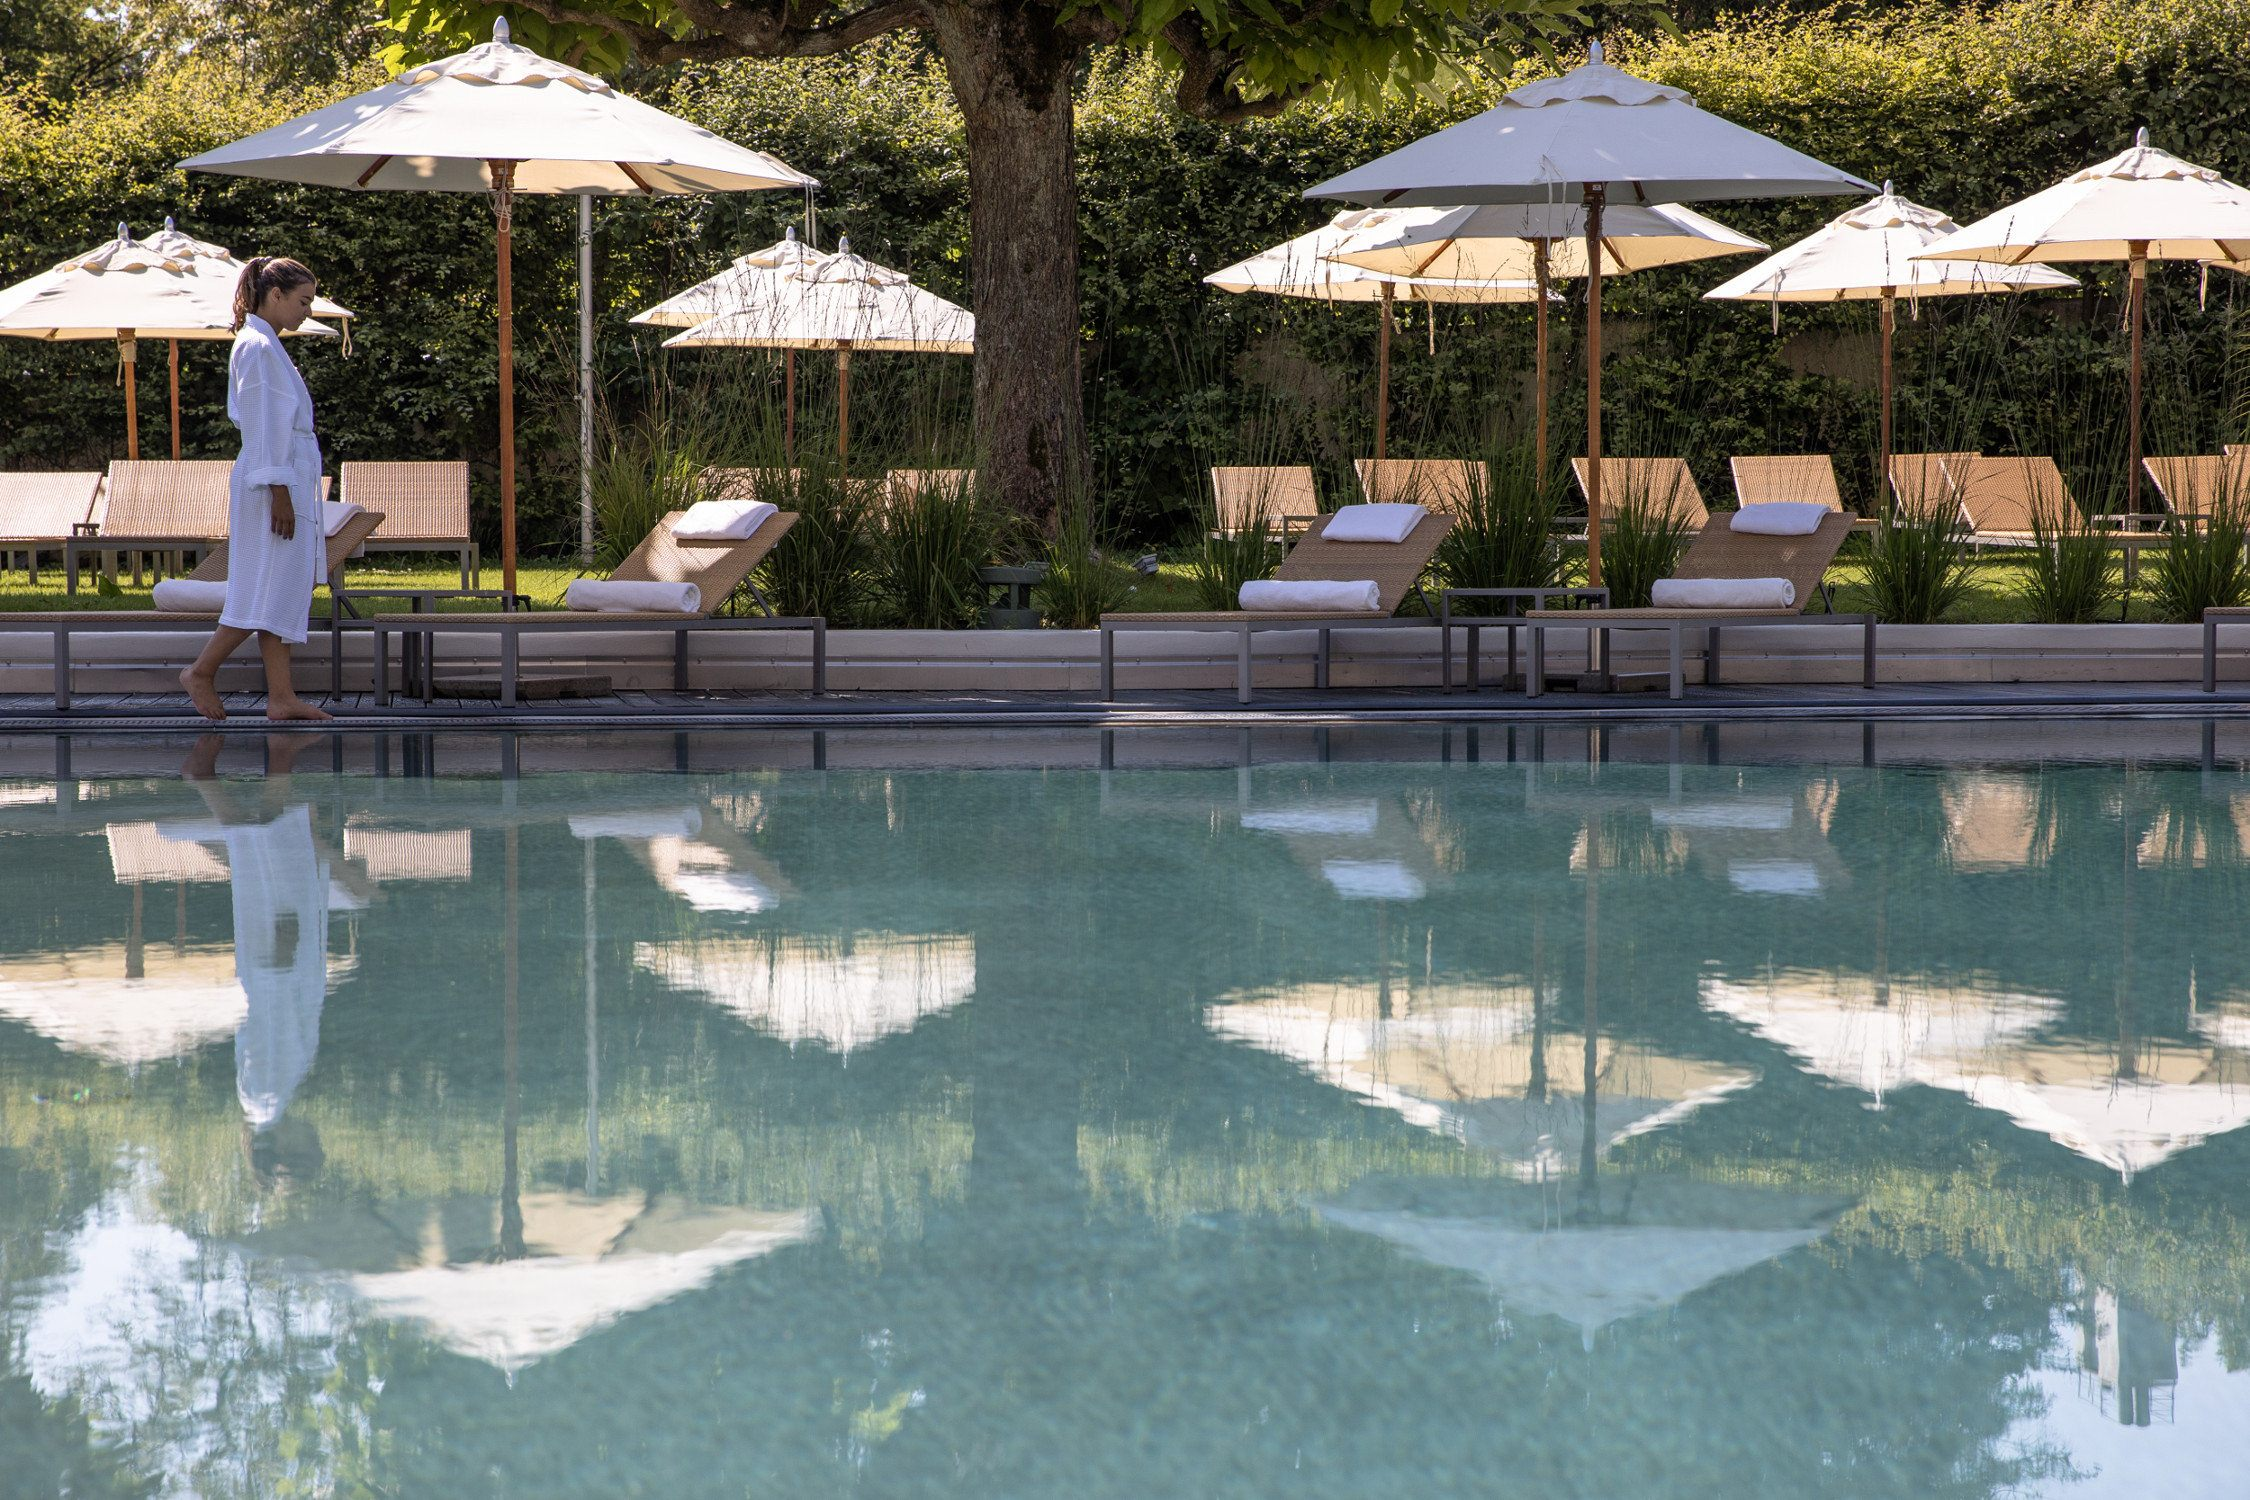 InterContinental-Geneva-Hotel-Pool-1